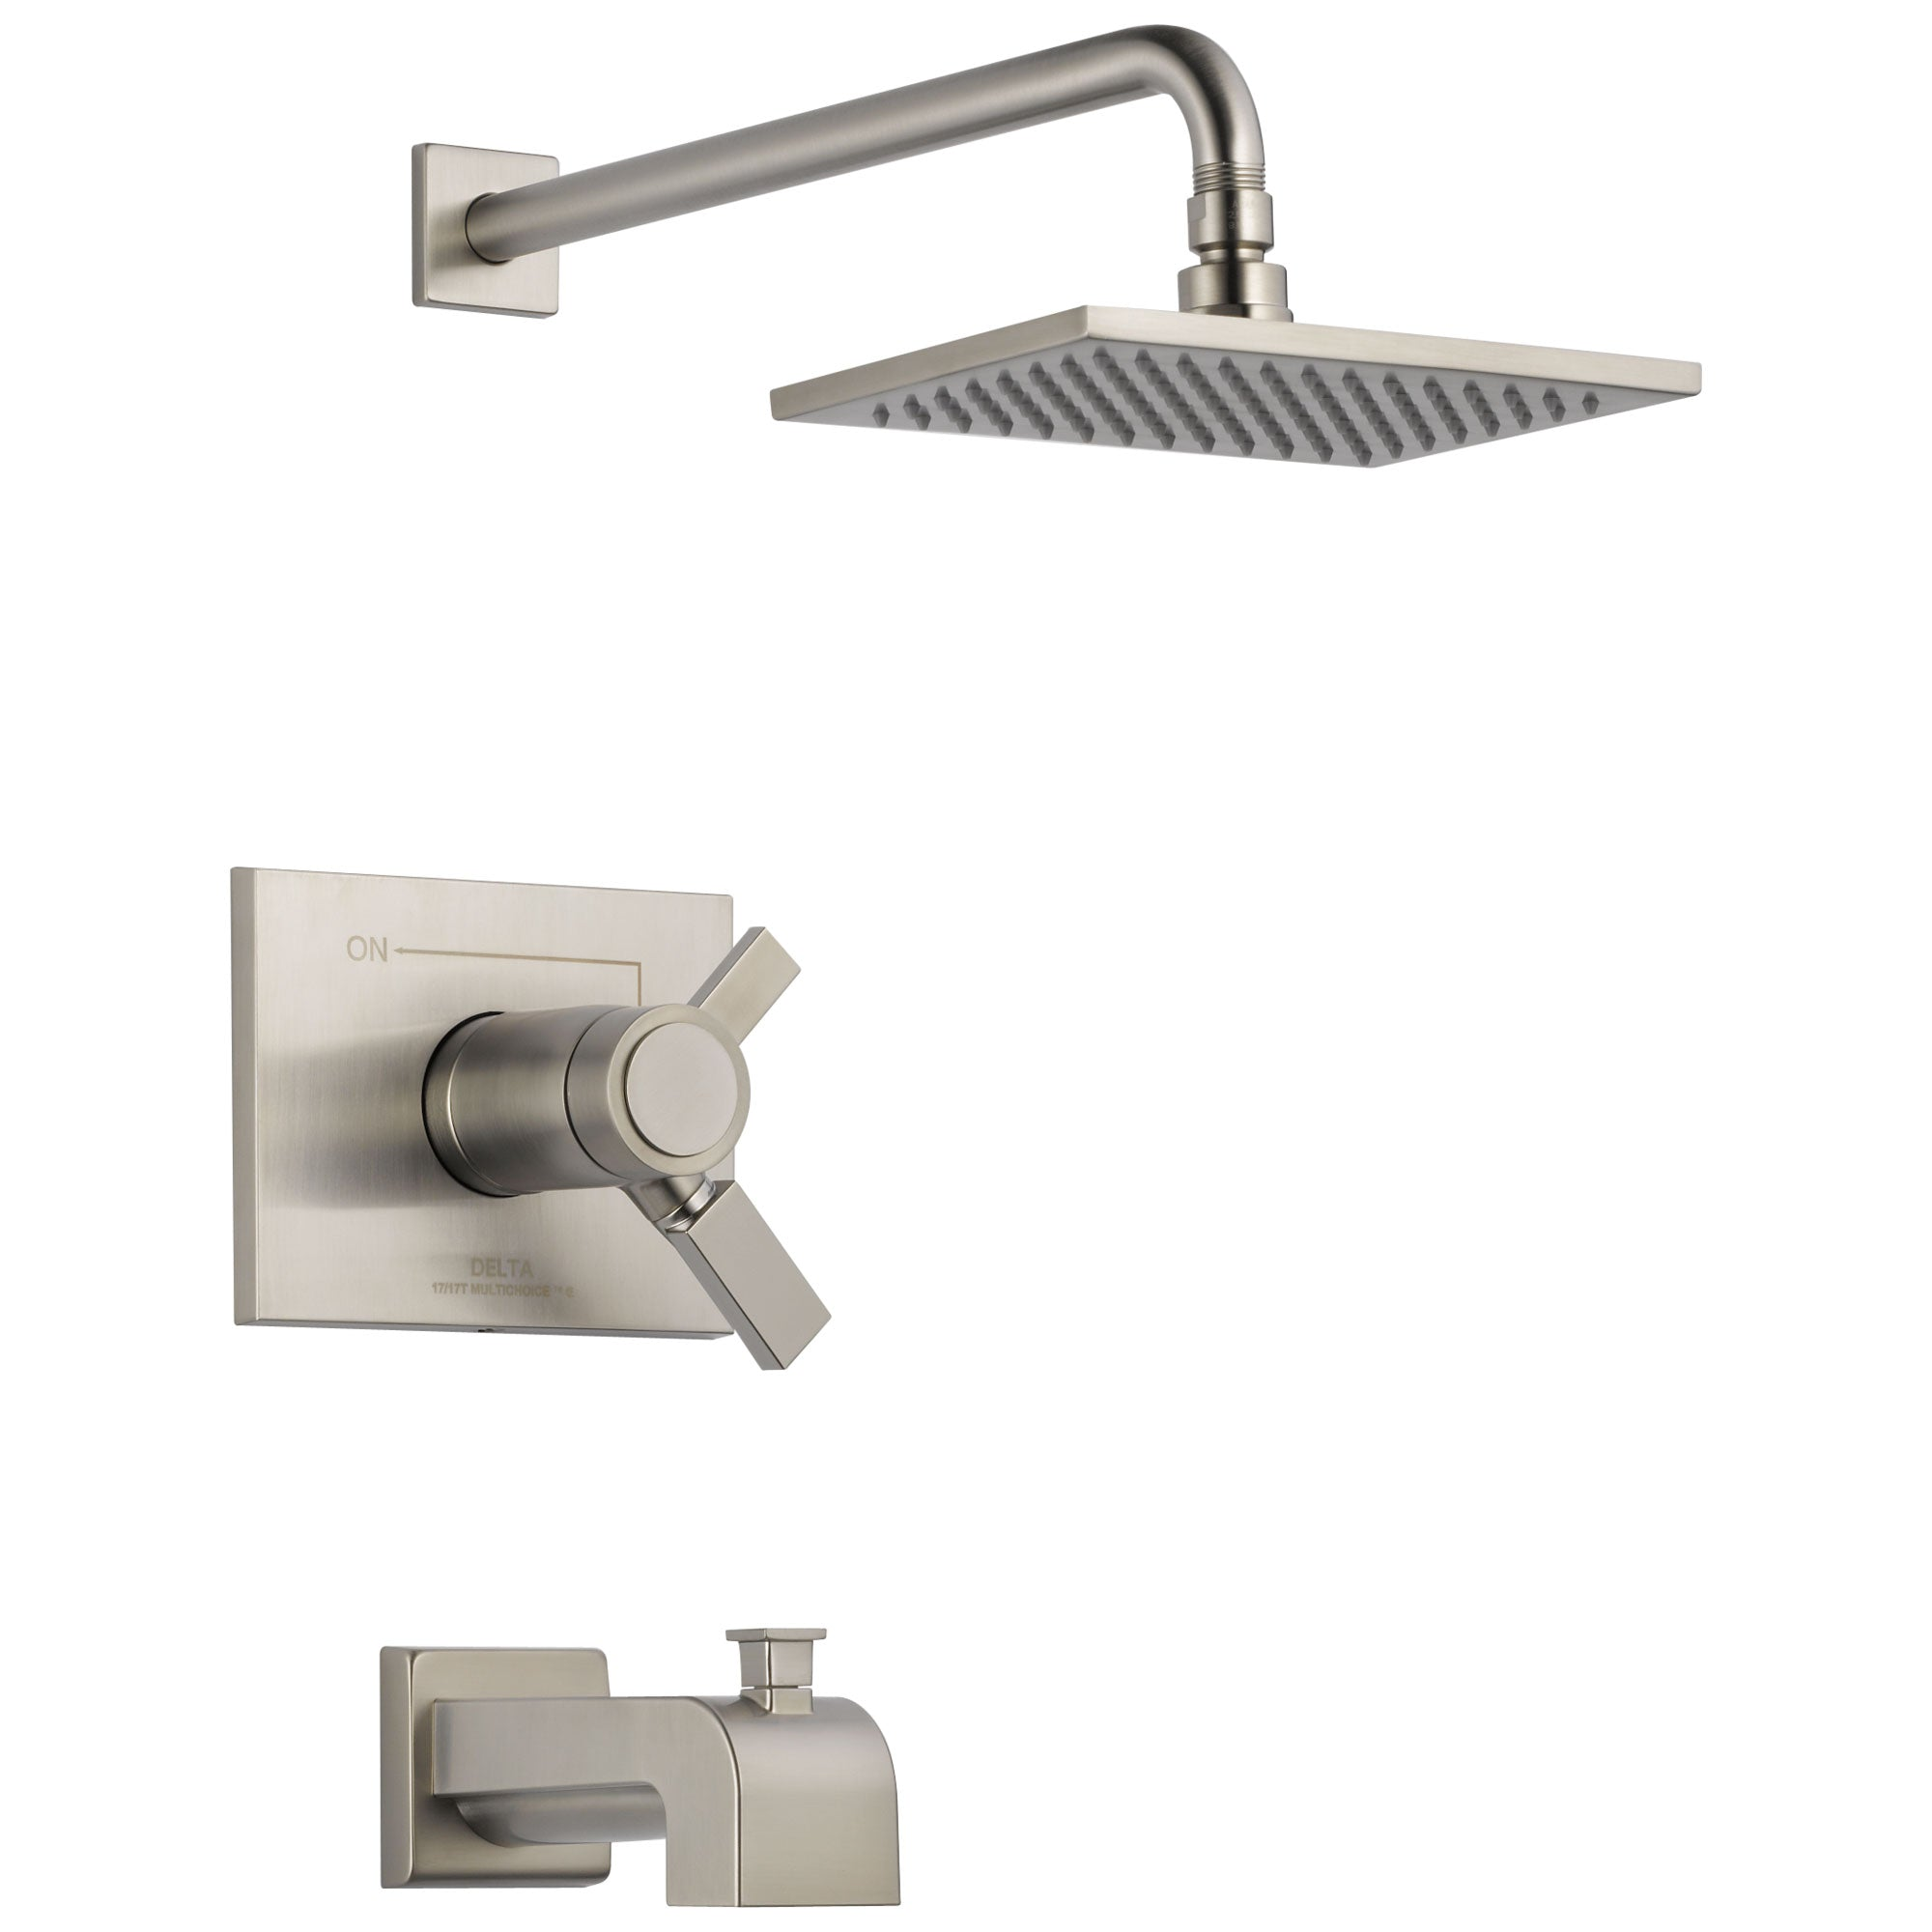 Delta Vero Stainless Steel Finish TempAssure 17T Series Water Efficient Tub & Shower Faucet Combination Trim Kit (Requires Valve) DT17T453SSWE